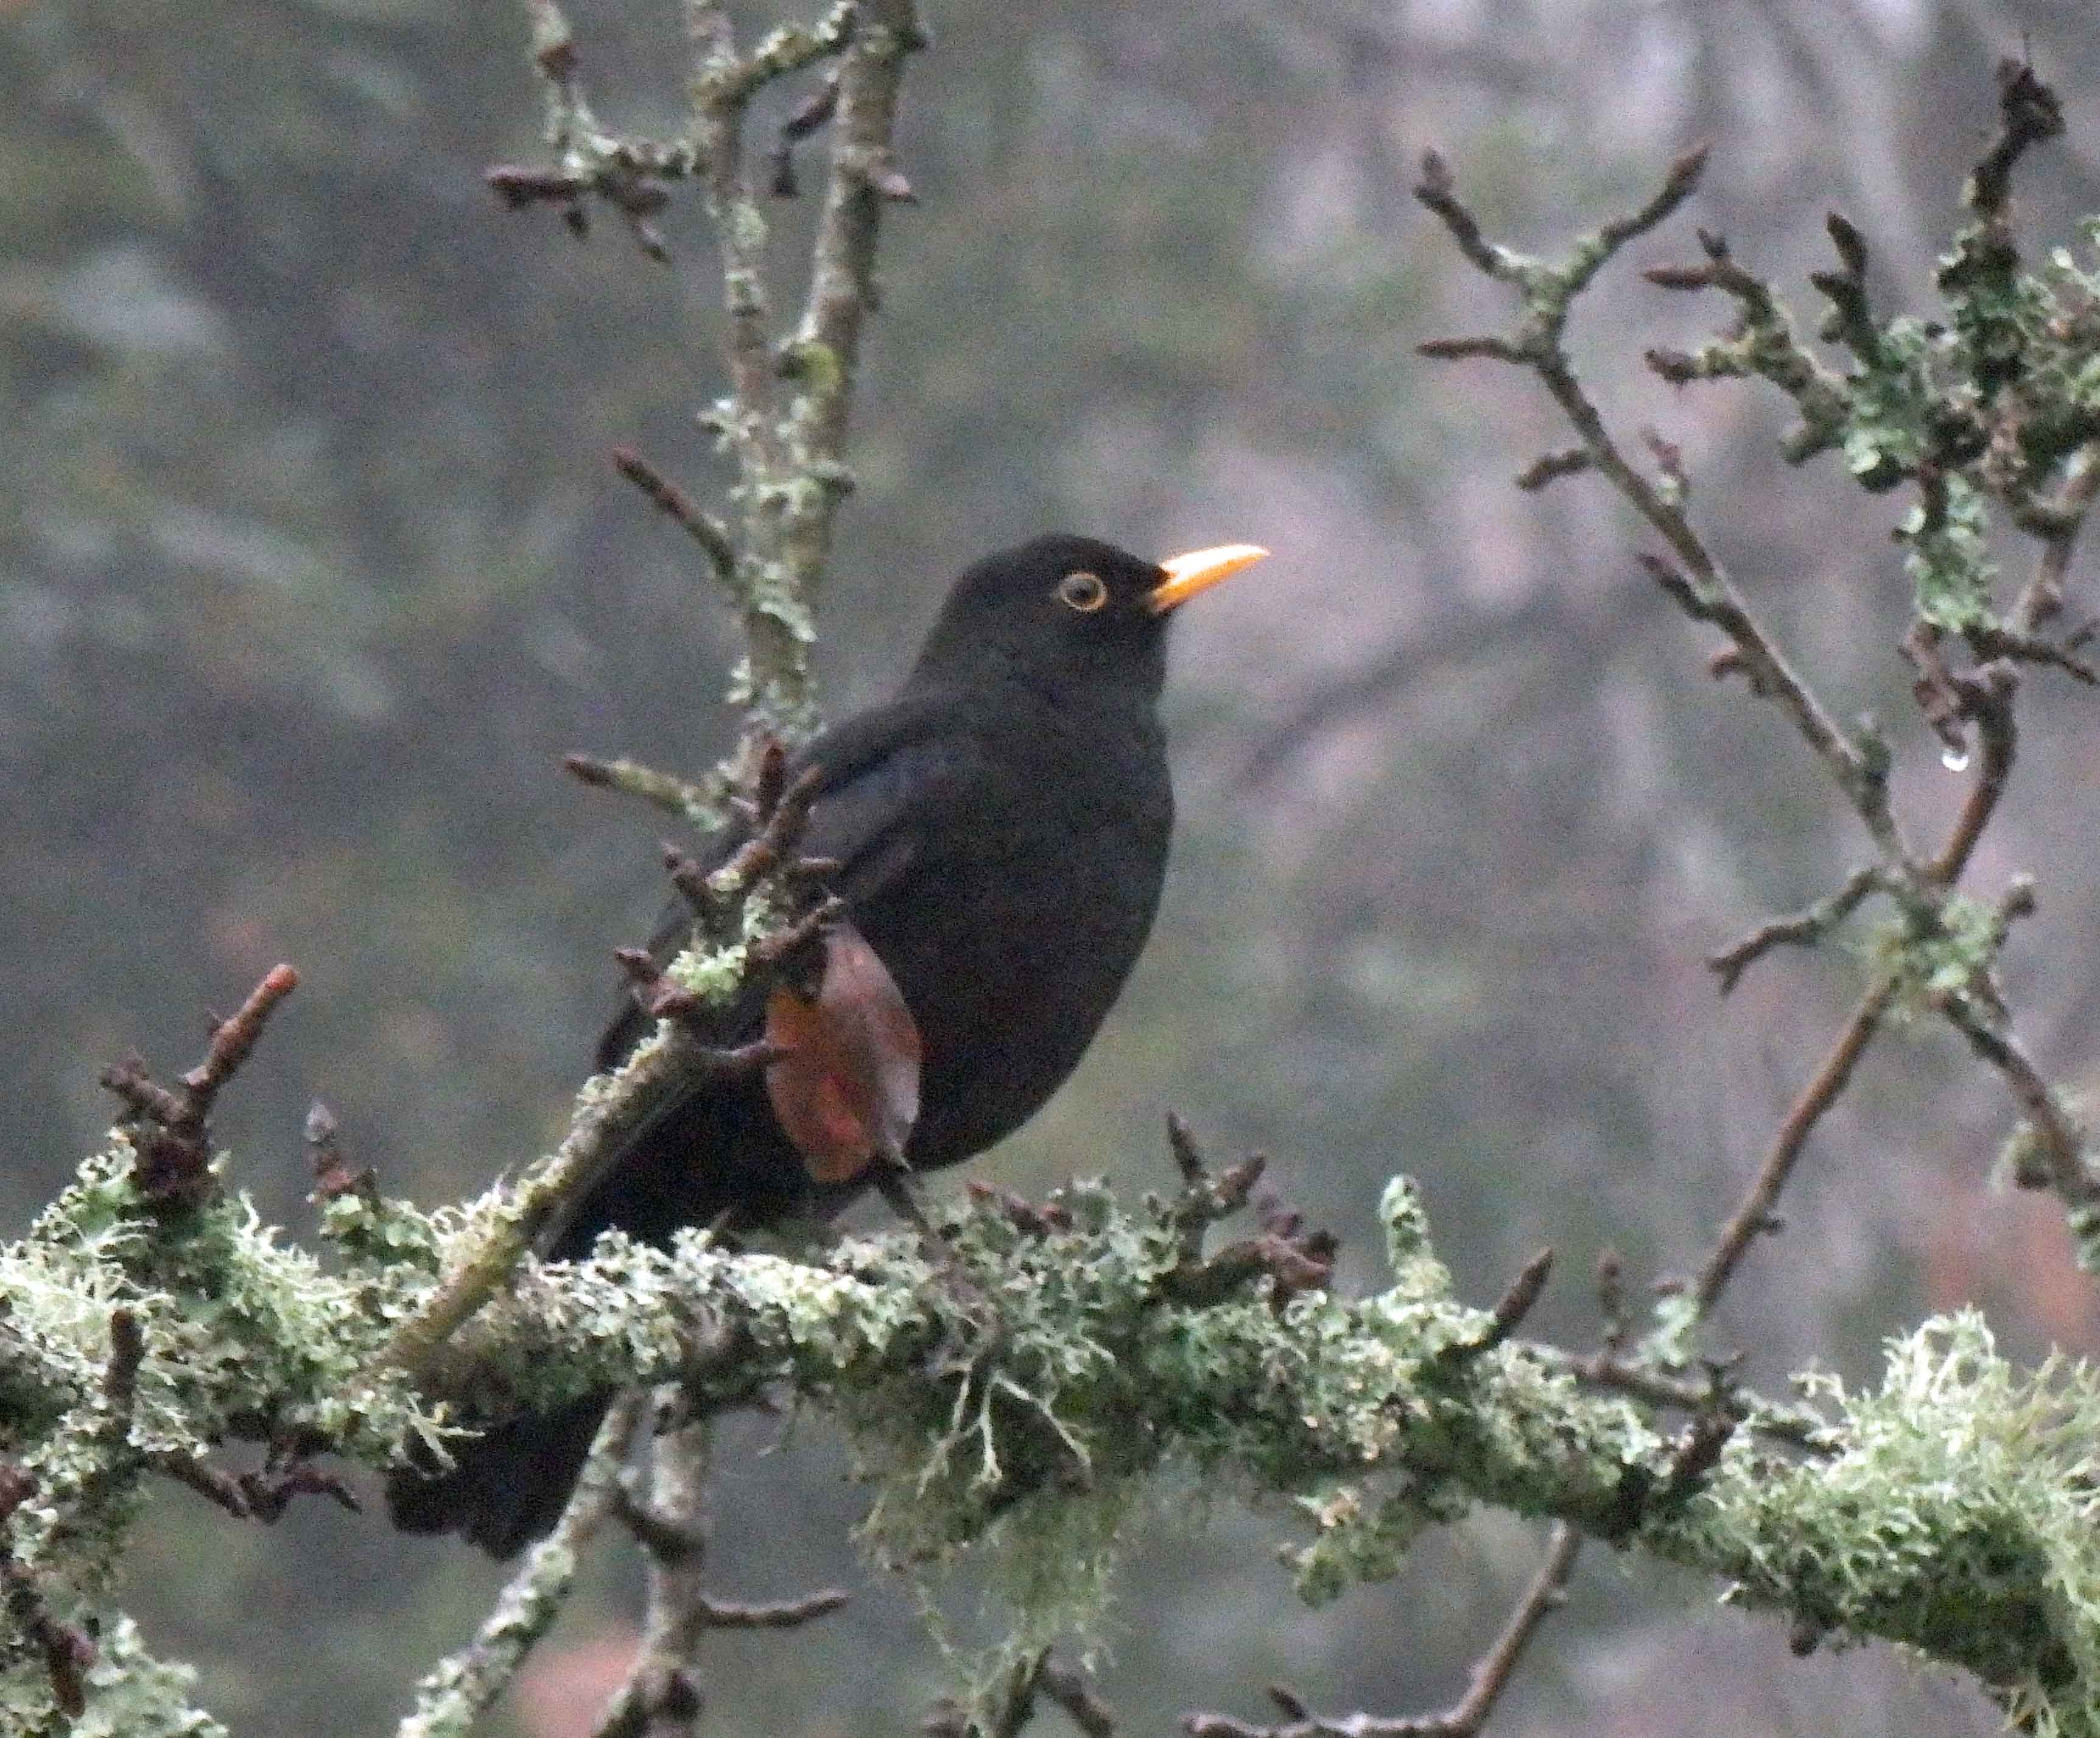 A single blackbird